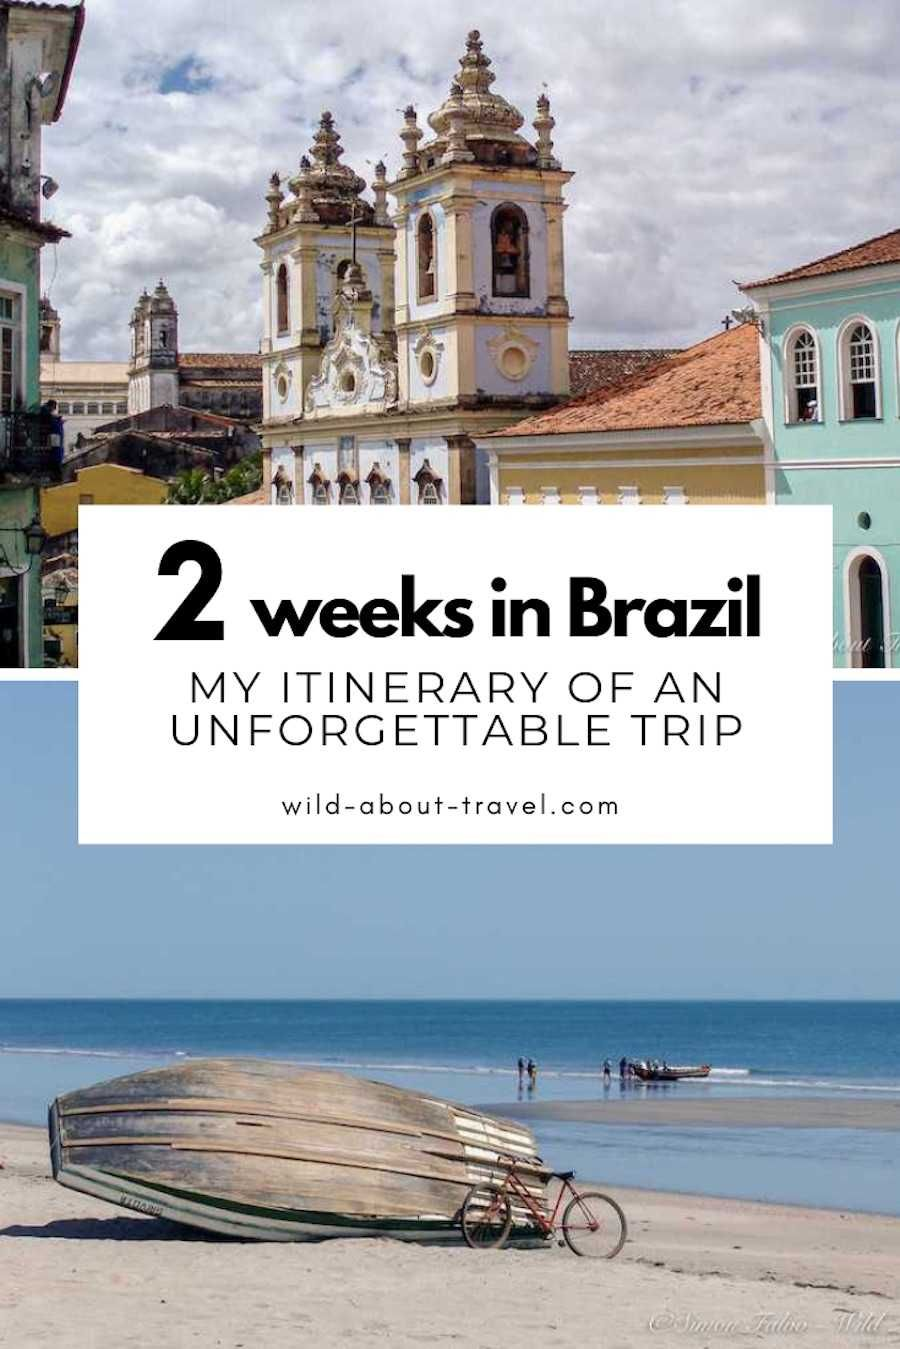 2 Weeks In Brazil How To Plan An Unforgettable Trip Brazil Travel South America Travel Destinations South America Travel Itinerary